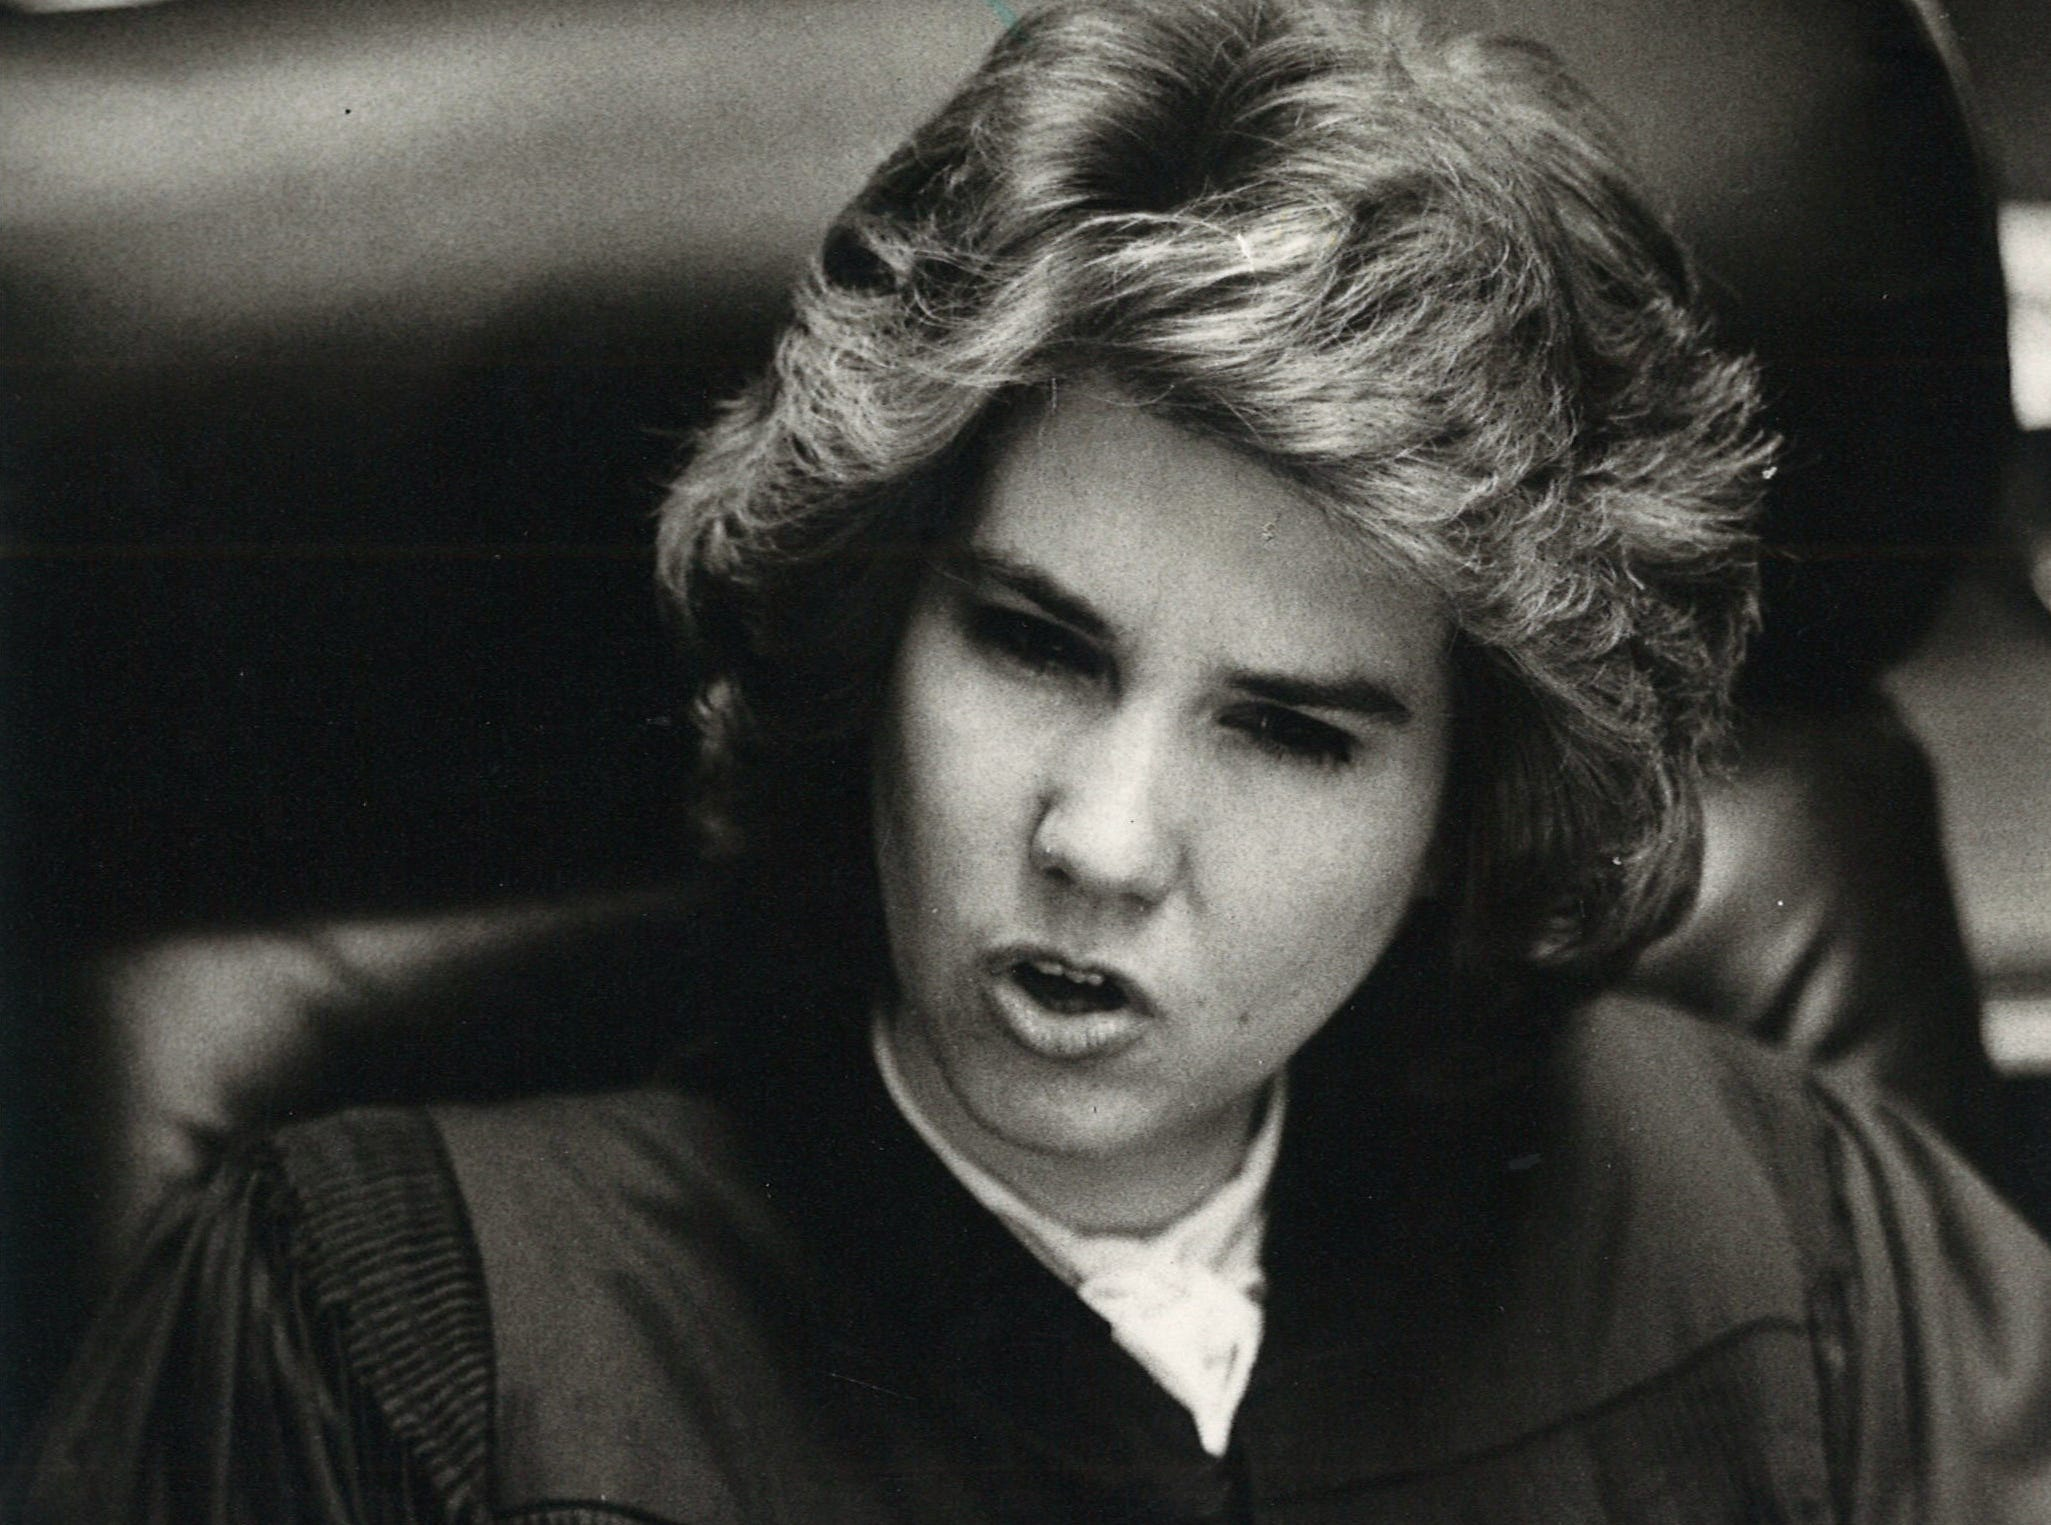 Paula Waddle was the first woman to serve as a municipal court judge in Corpus Christi when she was appointed in 1982.